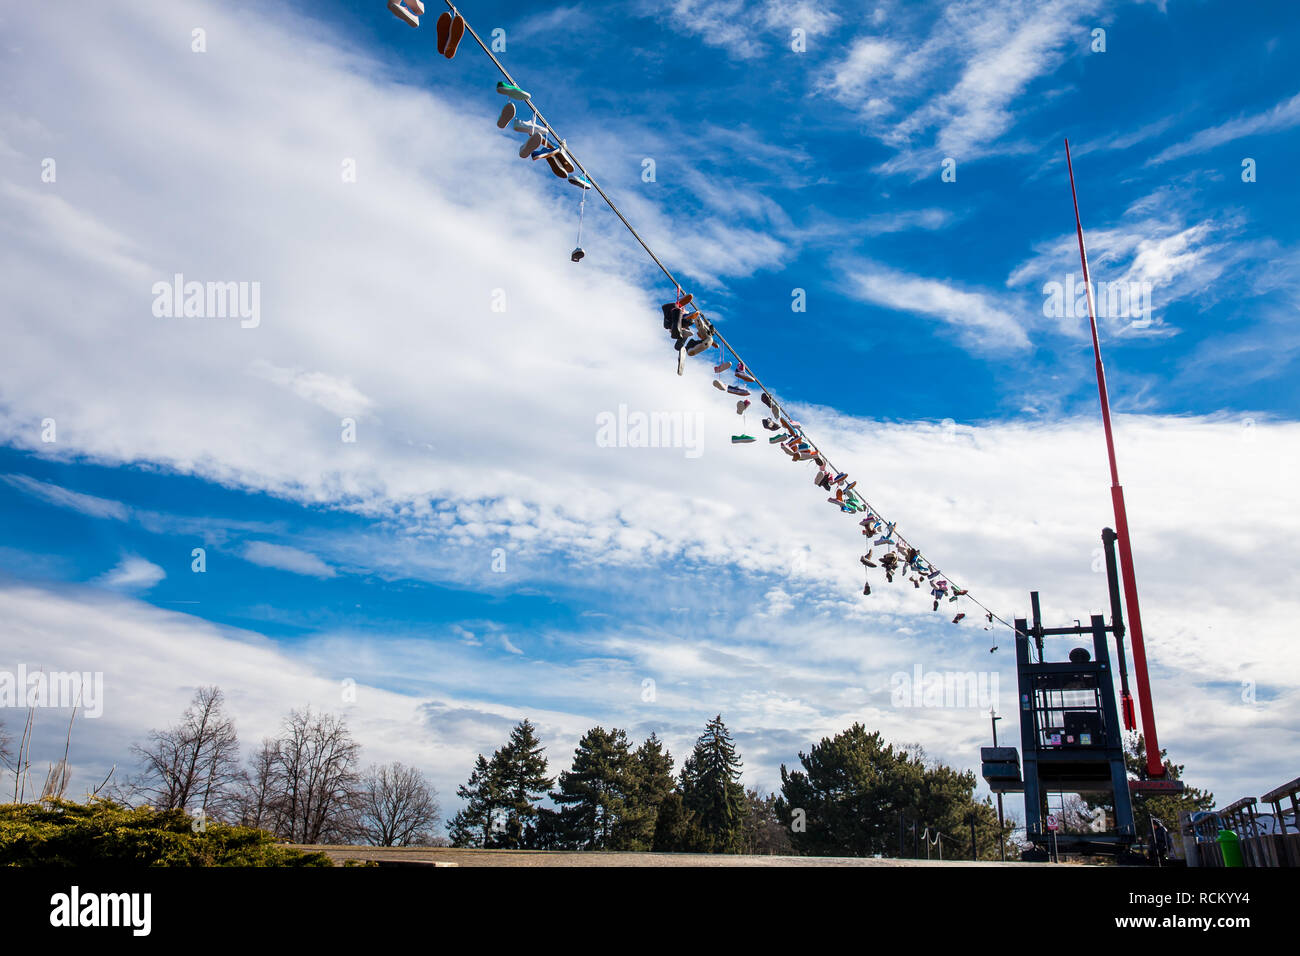 PRAGUE, CZECH REPUBLIC - APRIL, 2018: Shoes hanged at the power lines next to the metronome at the Letna hill view point - Stock Image